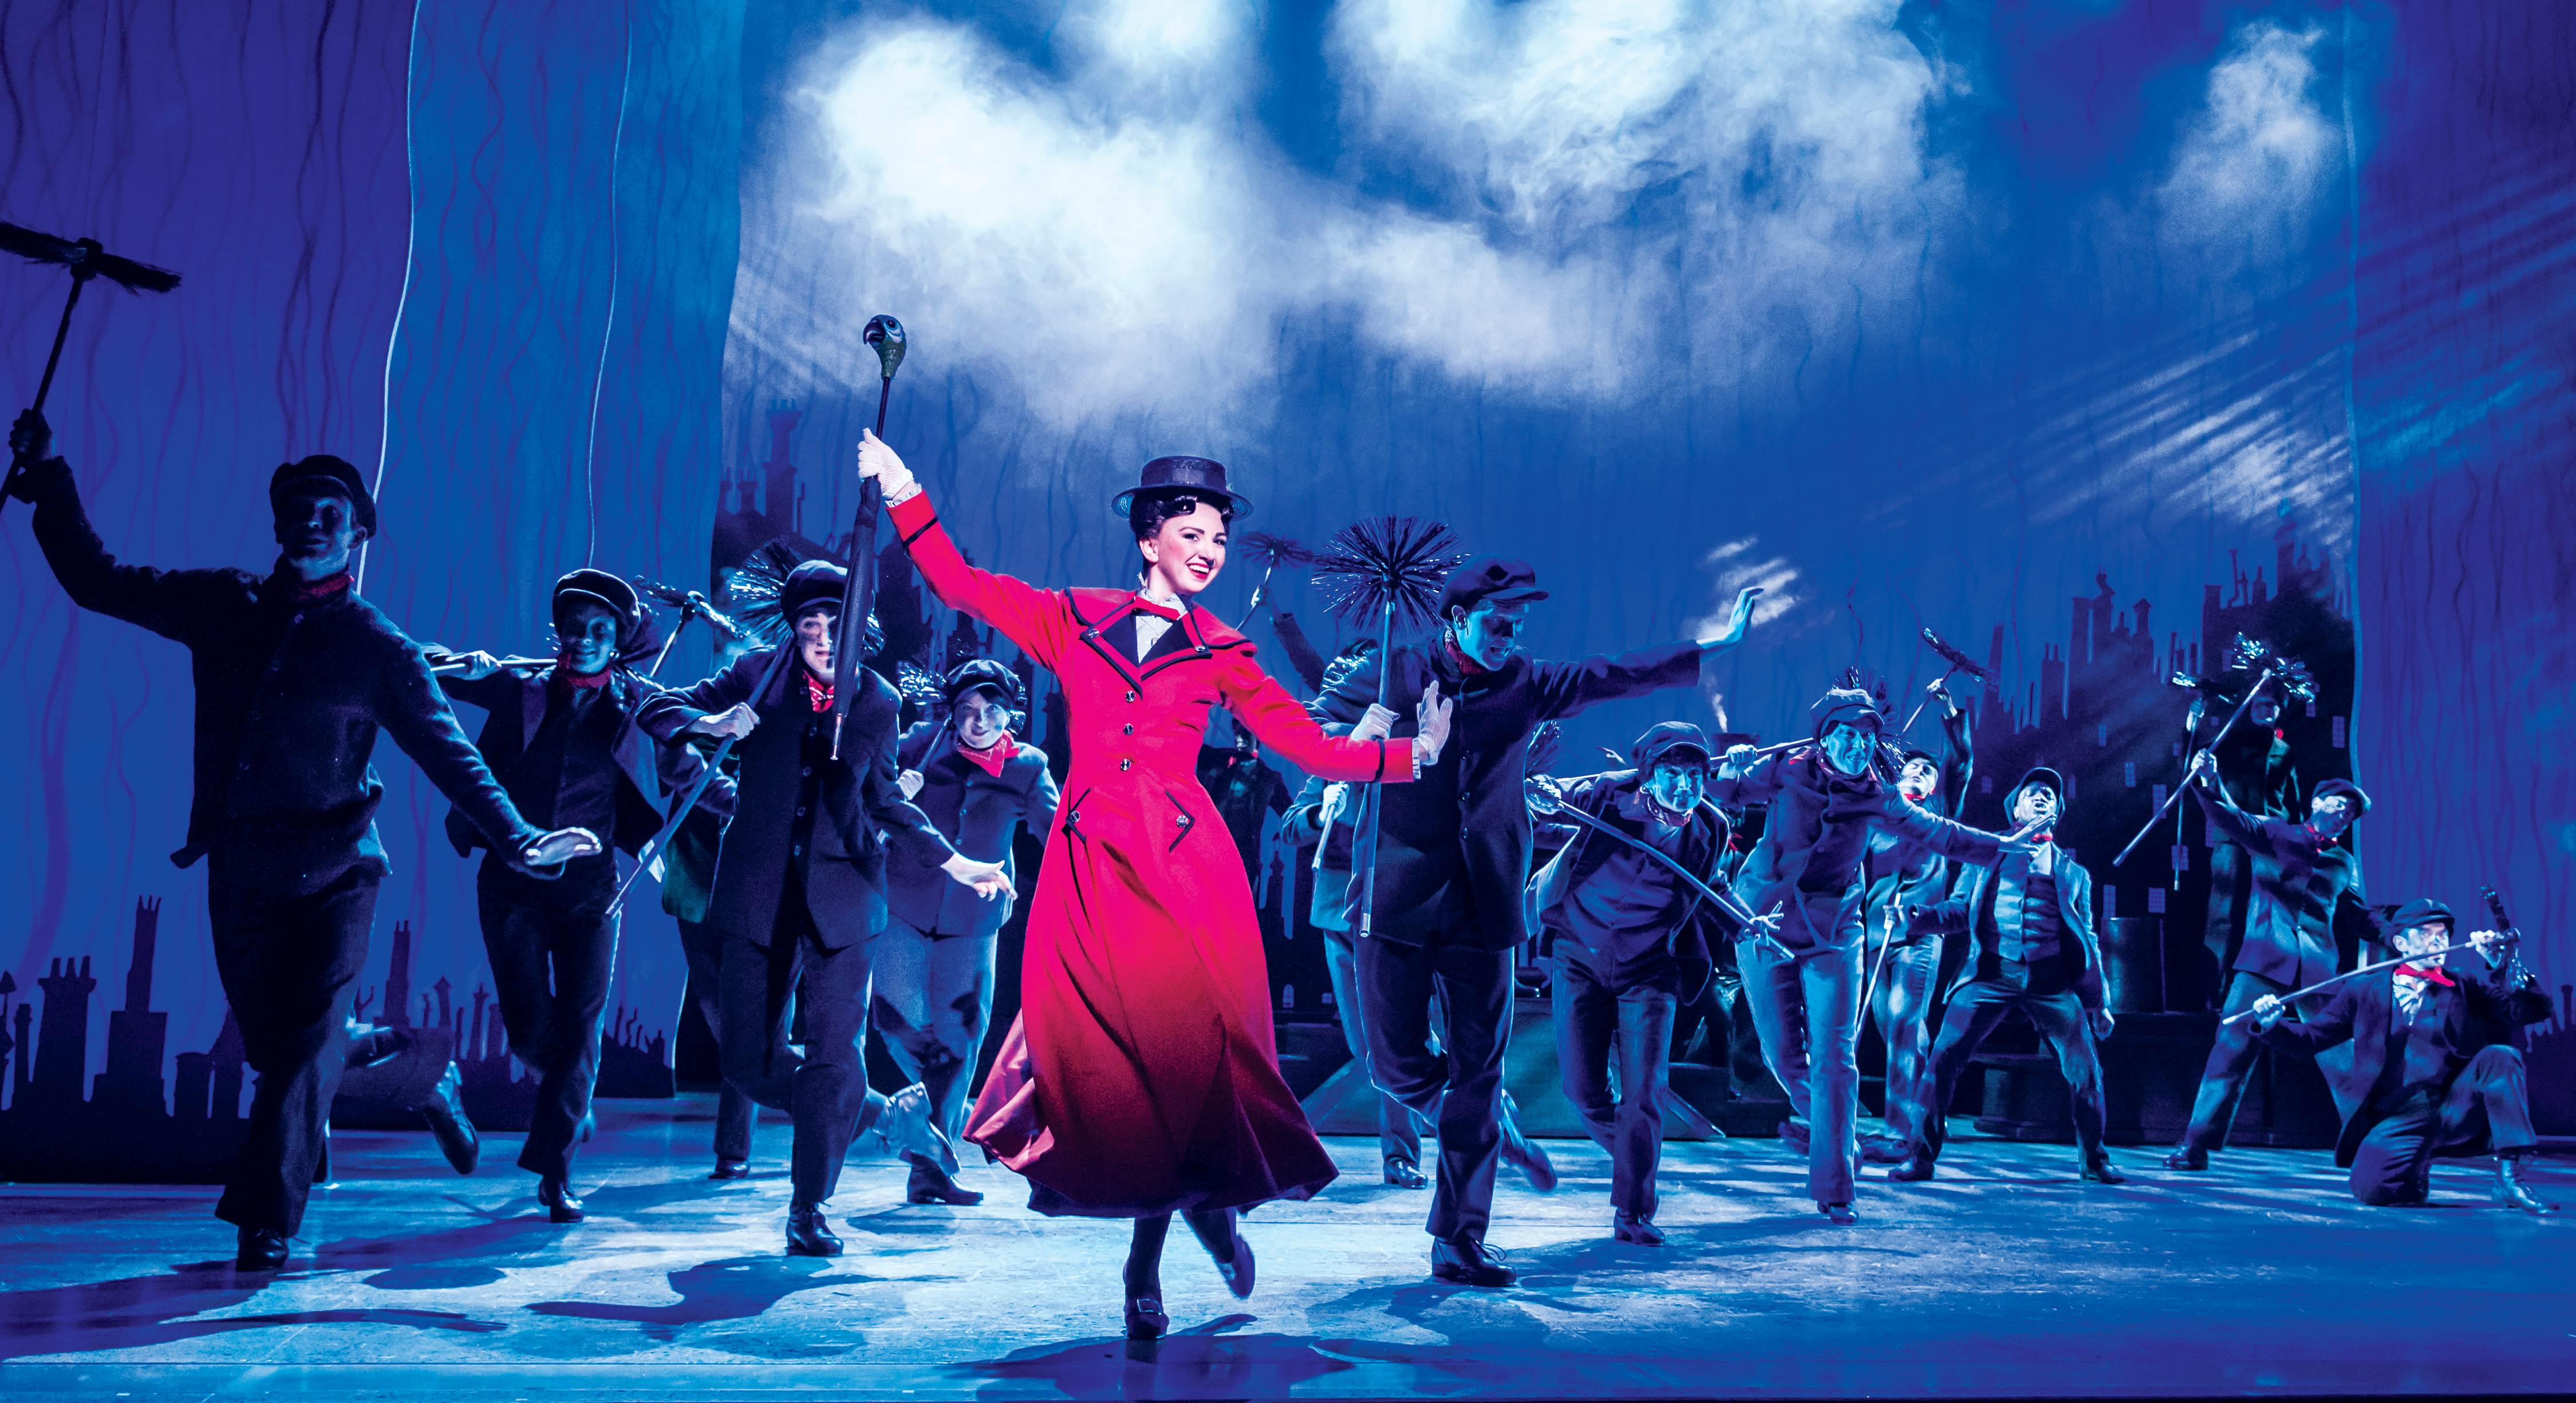 MARY_POPPINS_-_Step_In_Time_-_Zizi_Strallen_as_Mary_Poppins_and_the_Company._Photo_credit_Johan_Persson